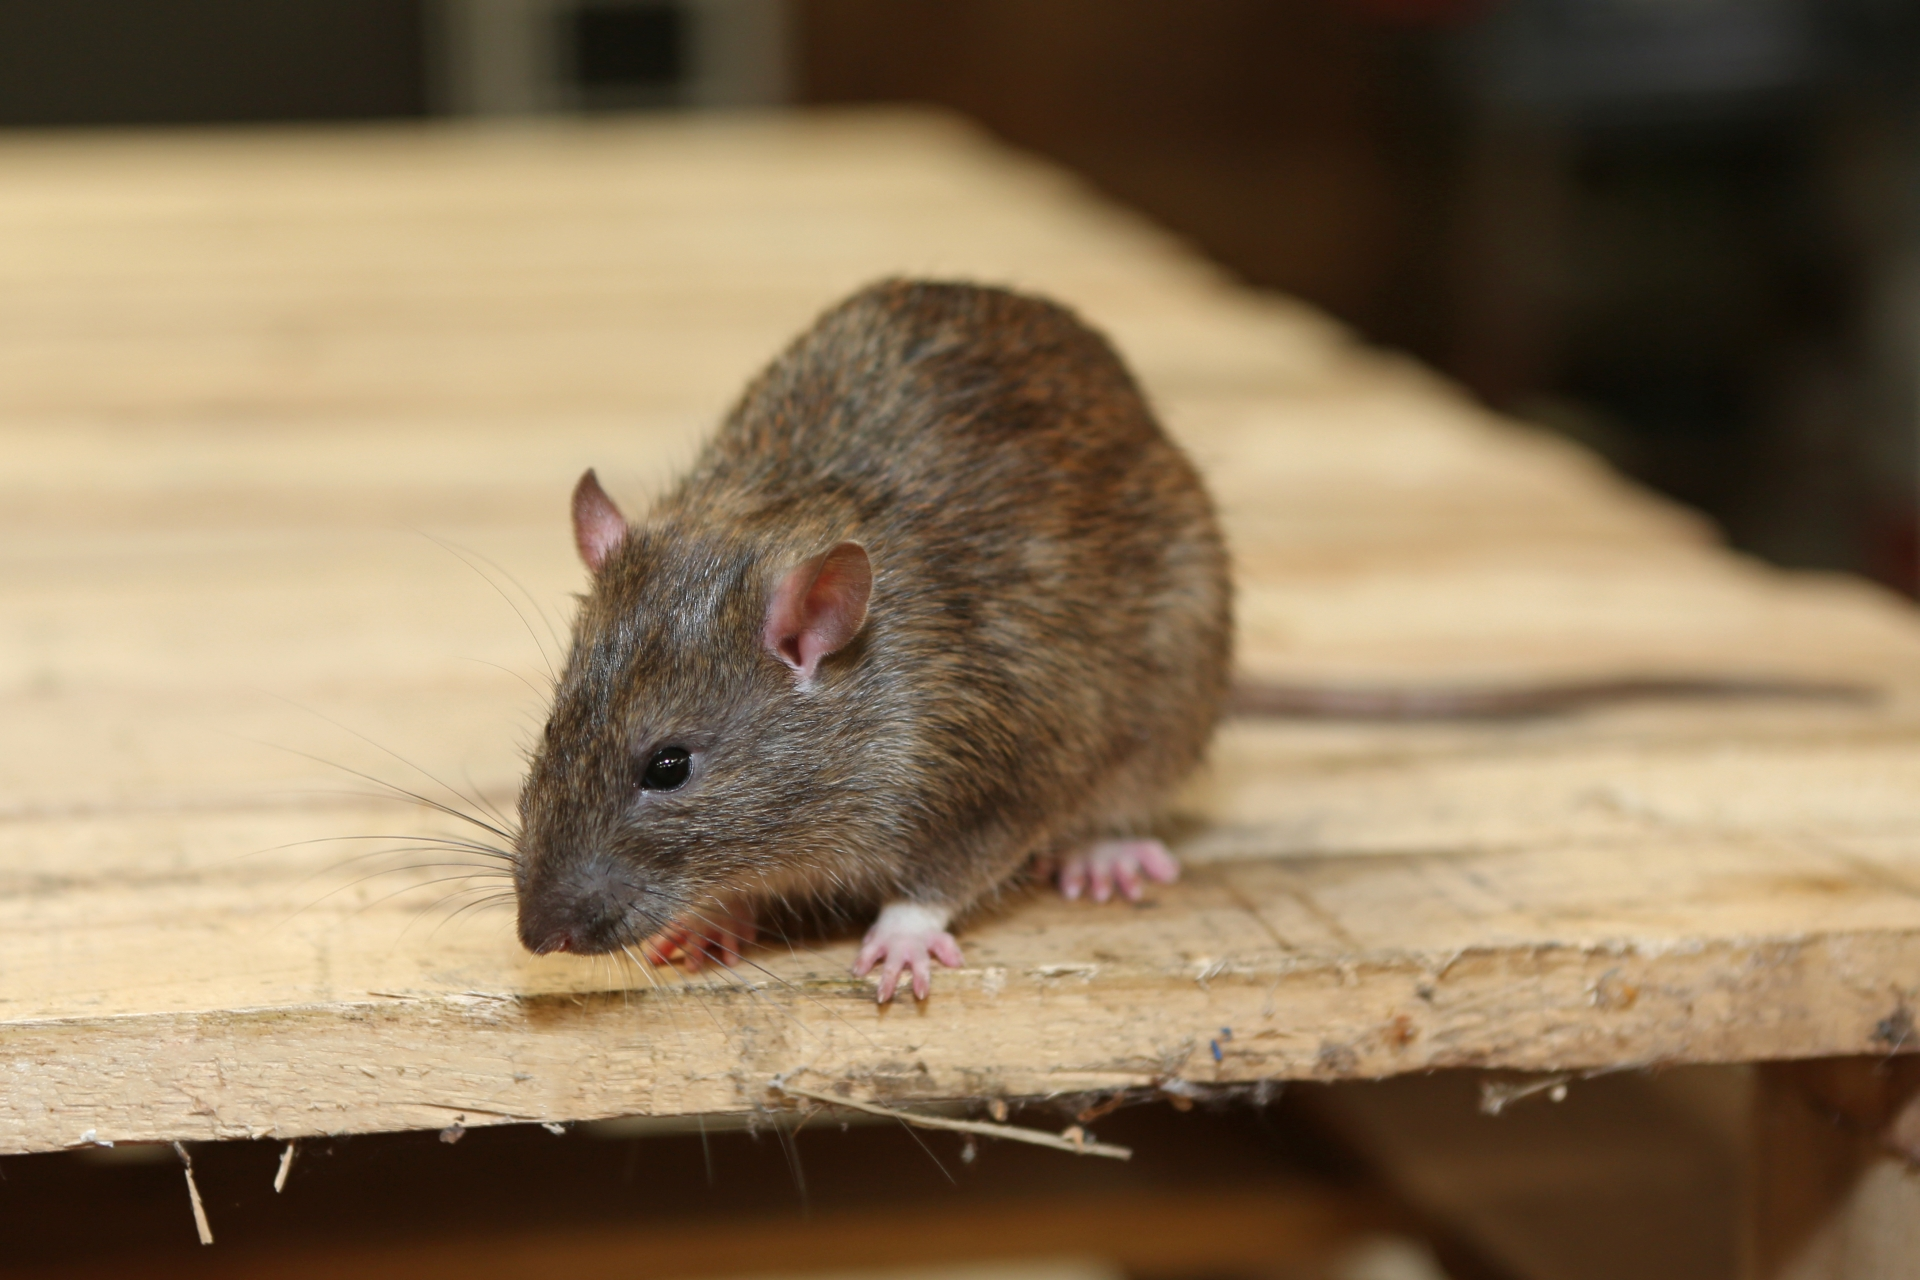 Rat extermination, Pest Control in Clayhall, IG5. Call Now 020 8166 9746